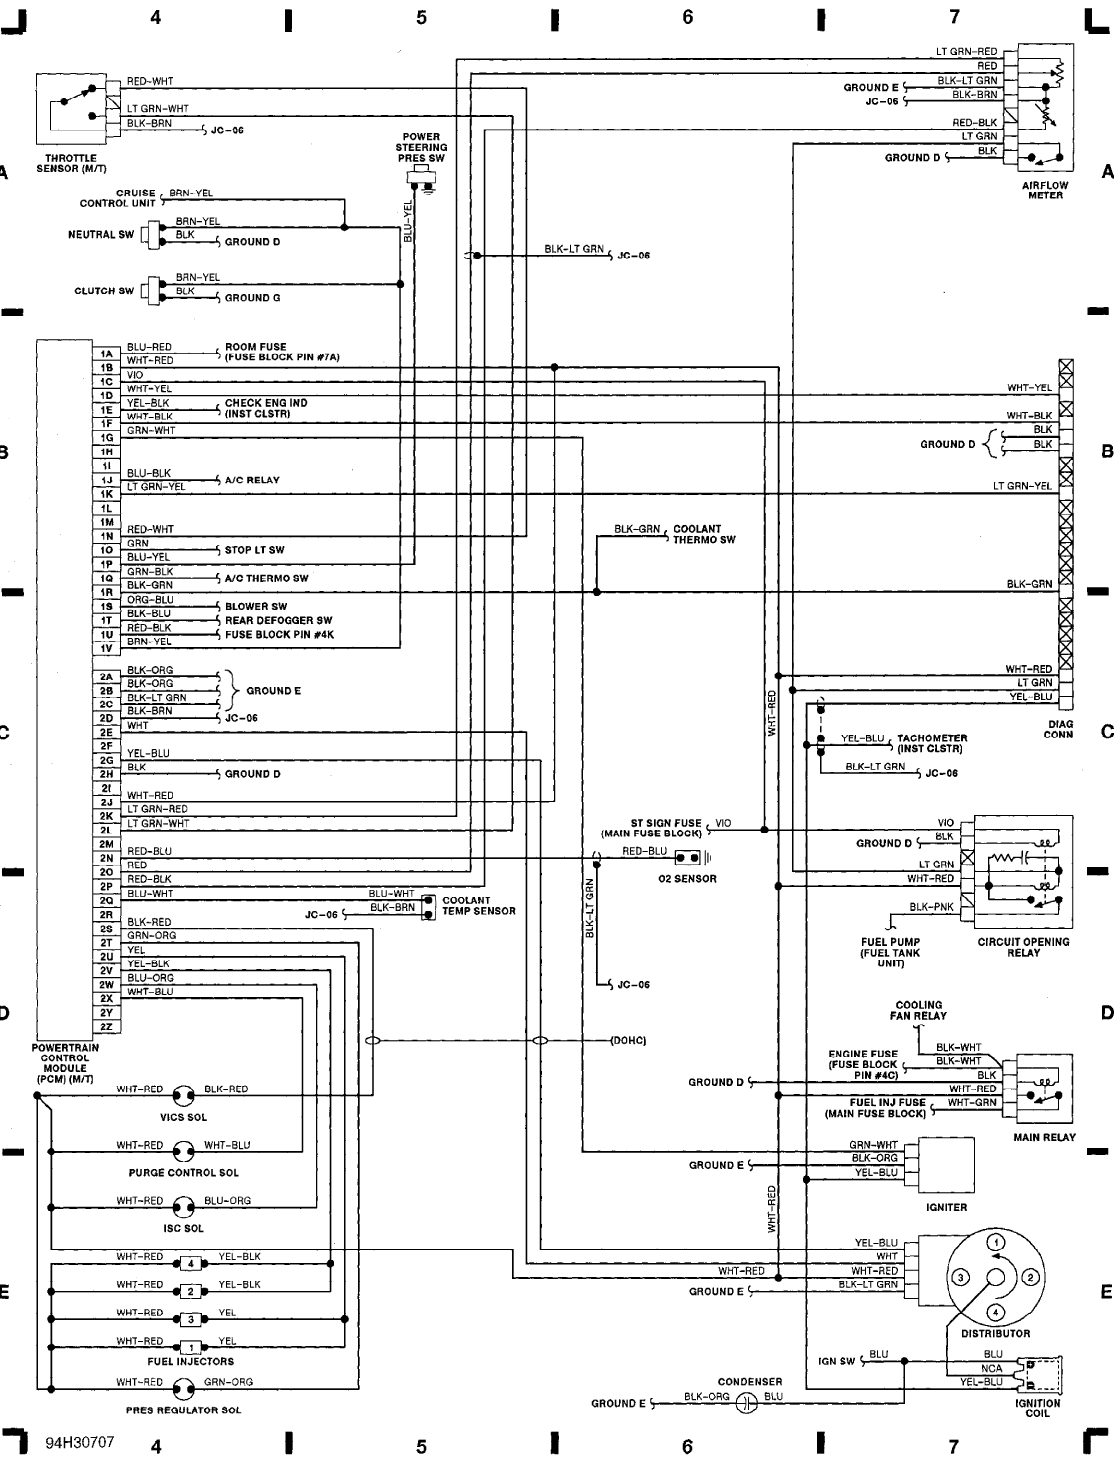 1993_protege_ecu Jeep Ecu Schematic Diagram on 1988 toyota pickup wiring diagram, ecu wiring schematic 99 hyundai elantra, ecu wiring diagram, 2003 altima ecu diagram, 2003 4runner stereo wiring diagram, ka24de wiring harness diagram, ka24e engine diagram, gm map sensor wiring diagram, napco 1000 circuit board diagram, ecu block diagram, swift 1 3 tbi ecu diagram, toyota 4runner diagram, induction diagram, ecu fuse diagram, obd2 engine harness ka24de diagram,